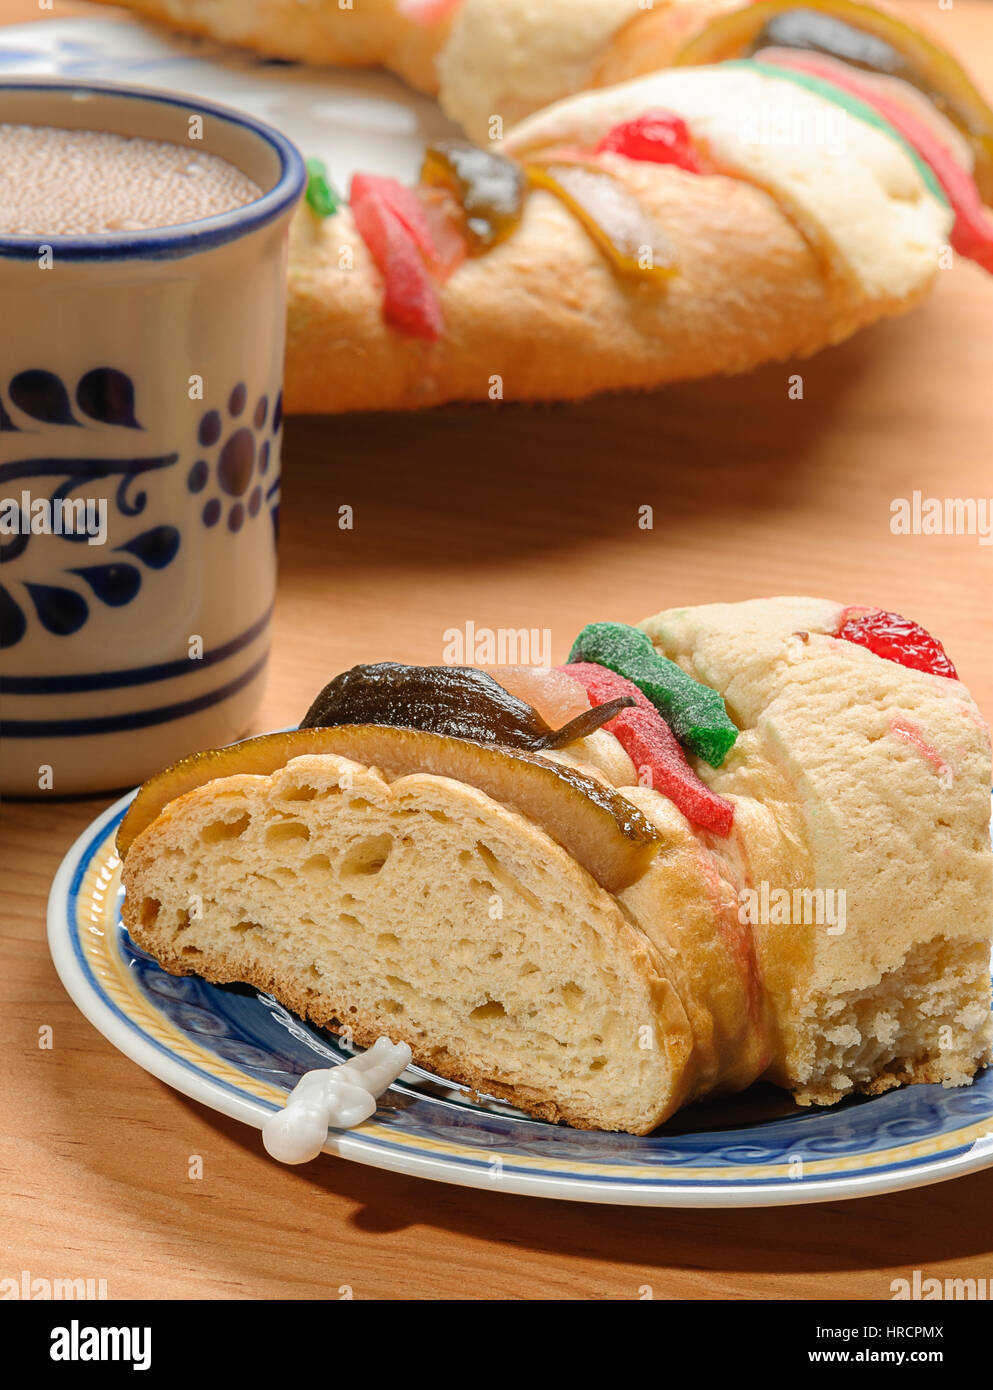 Chocolate cup with Epiphany cake, Kings cake, Rosca de reyes or Roscon de reyes - Stock Image